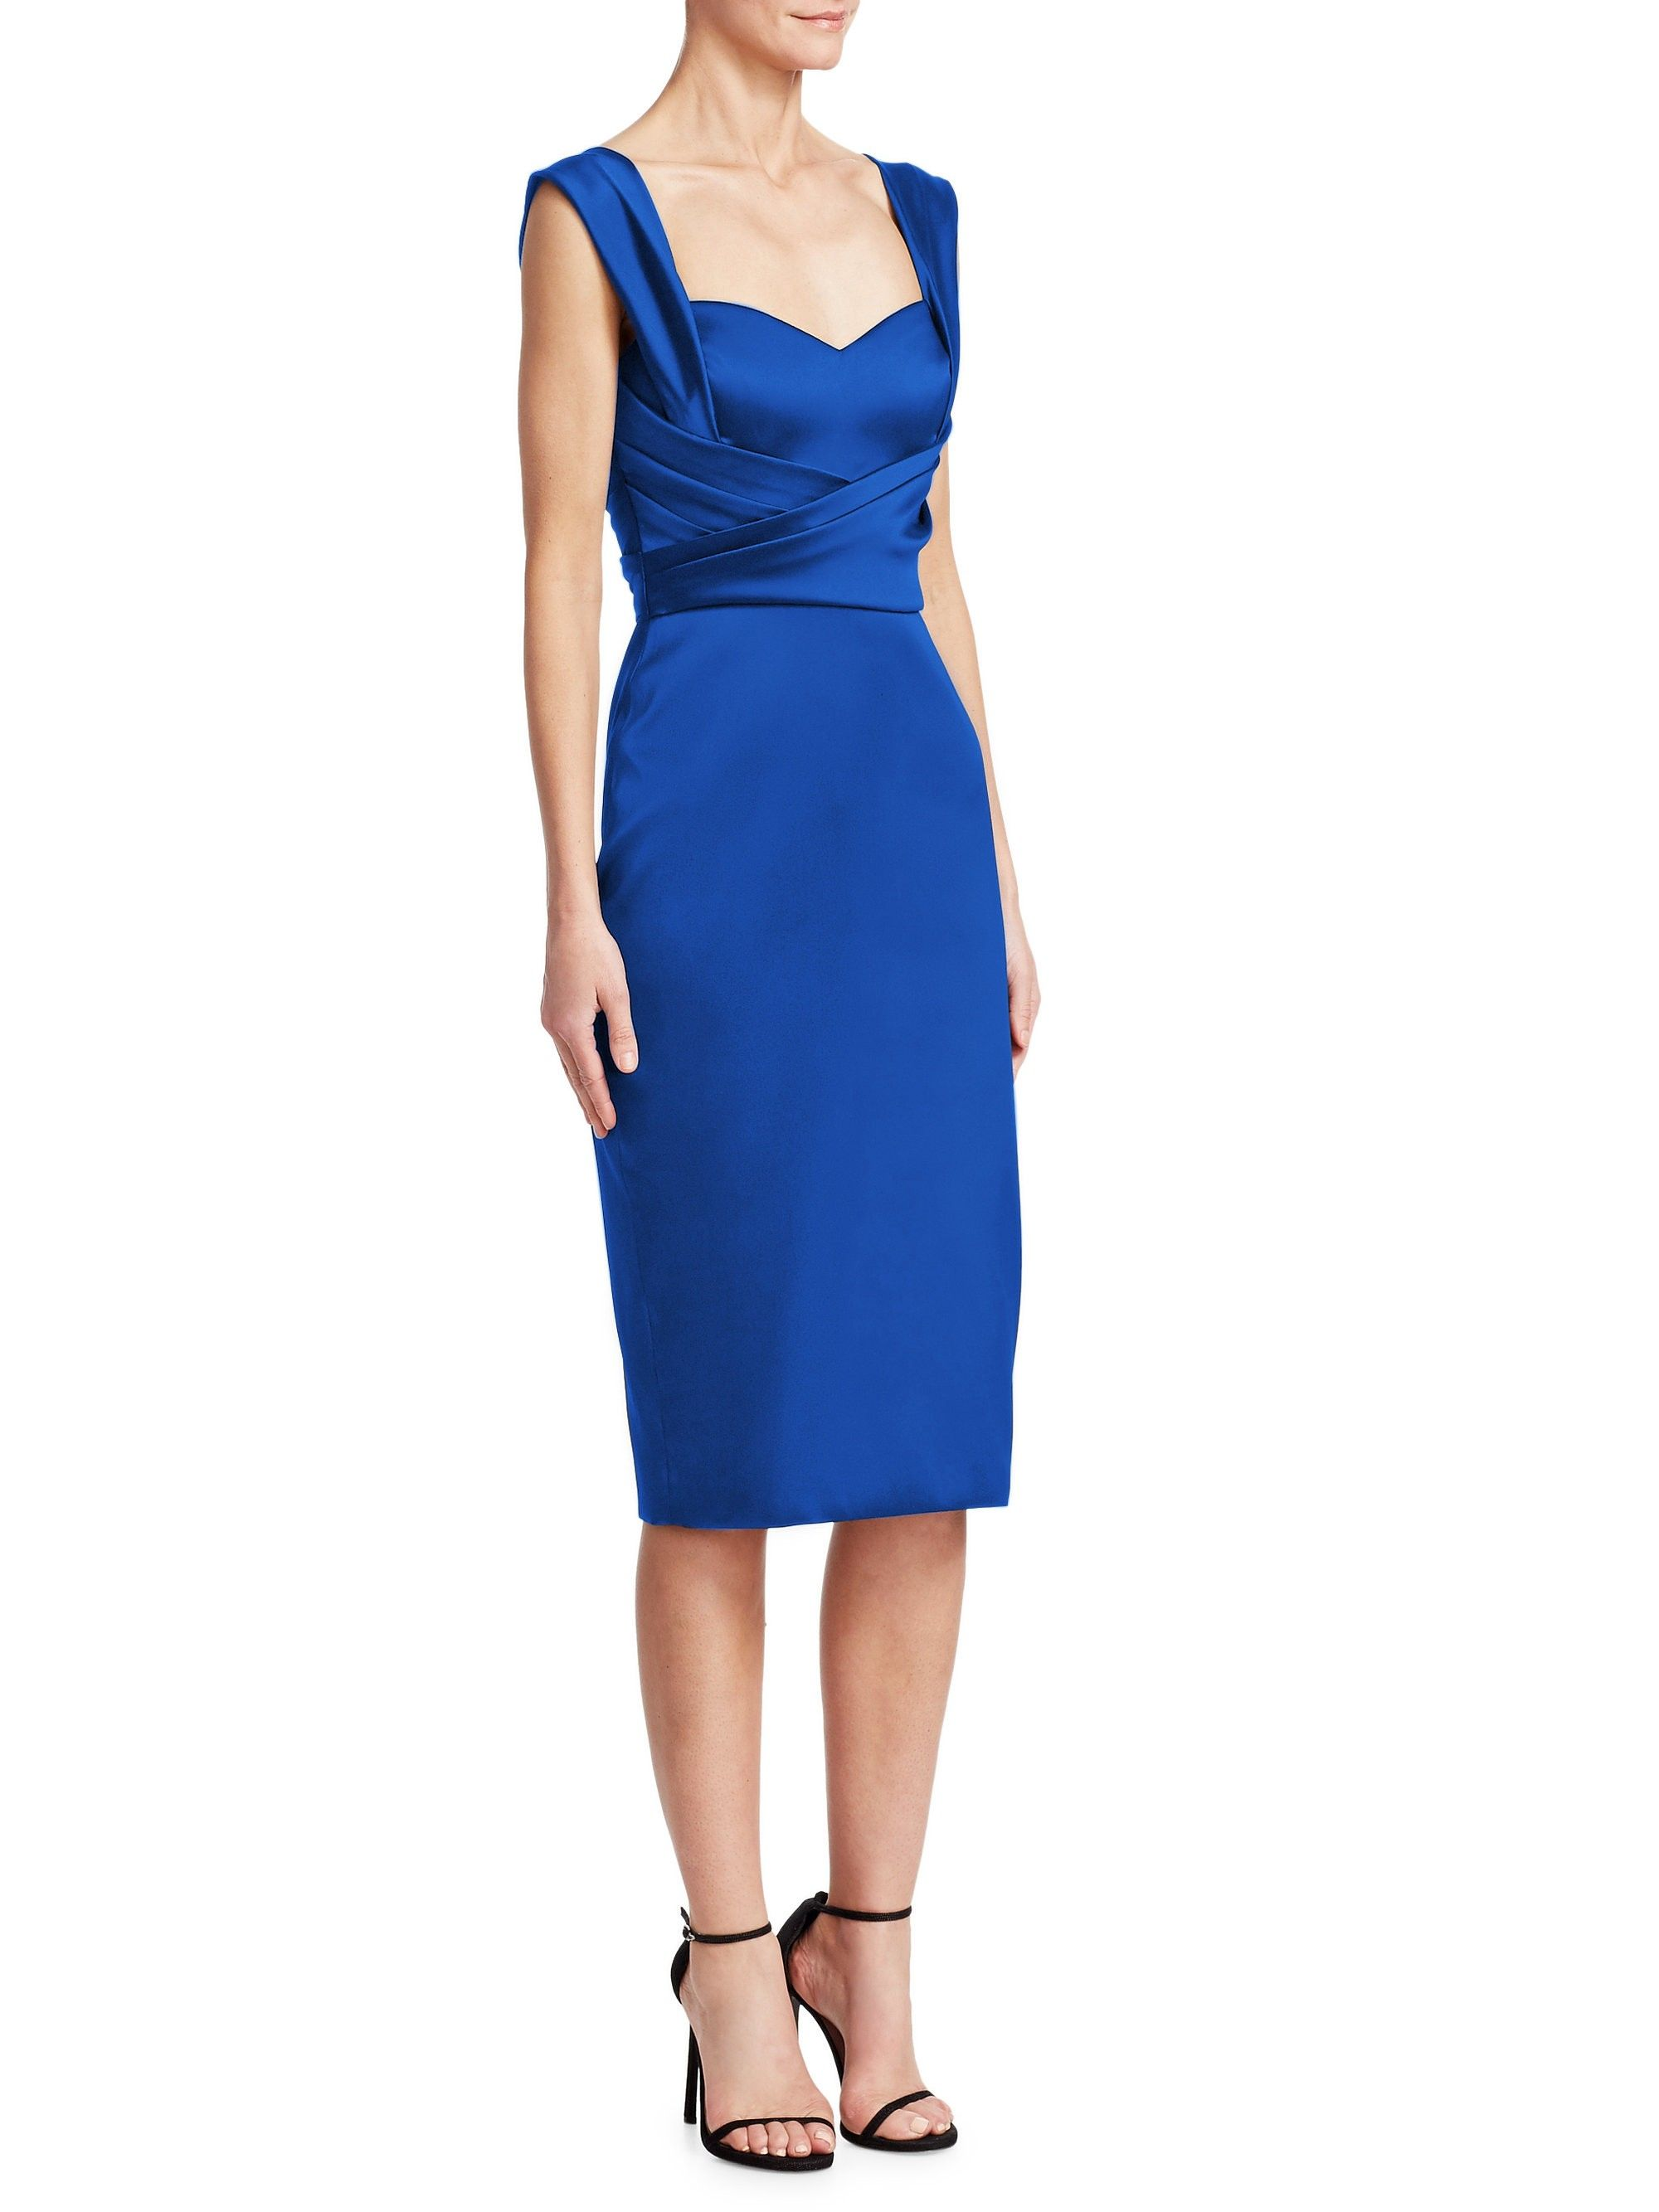 9ac5ed14b69 Theia Sweetheart Cocktail Dress - Cobalt 10 Satin Dresses